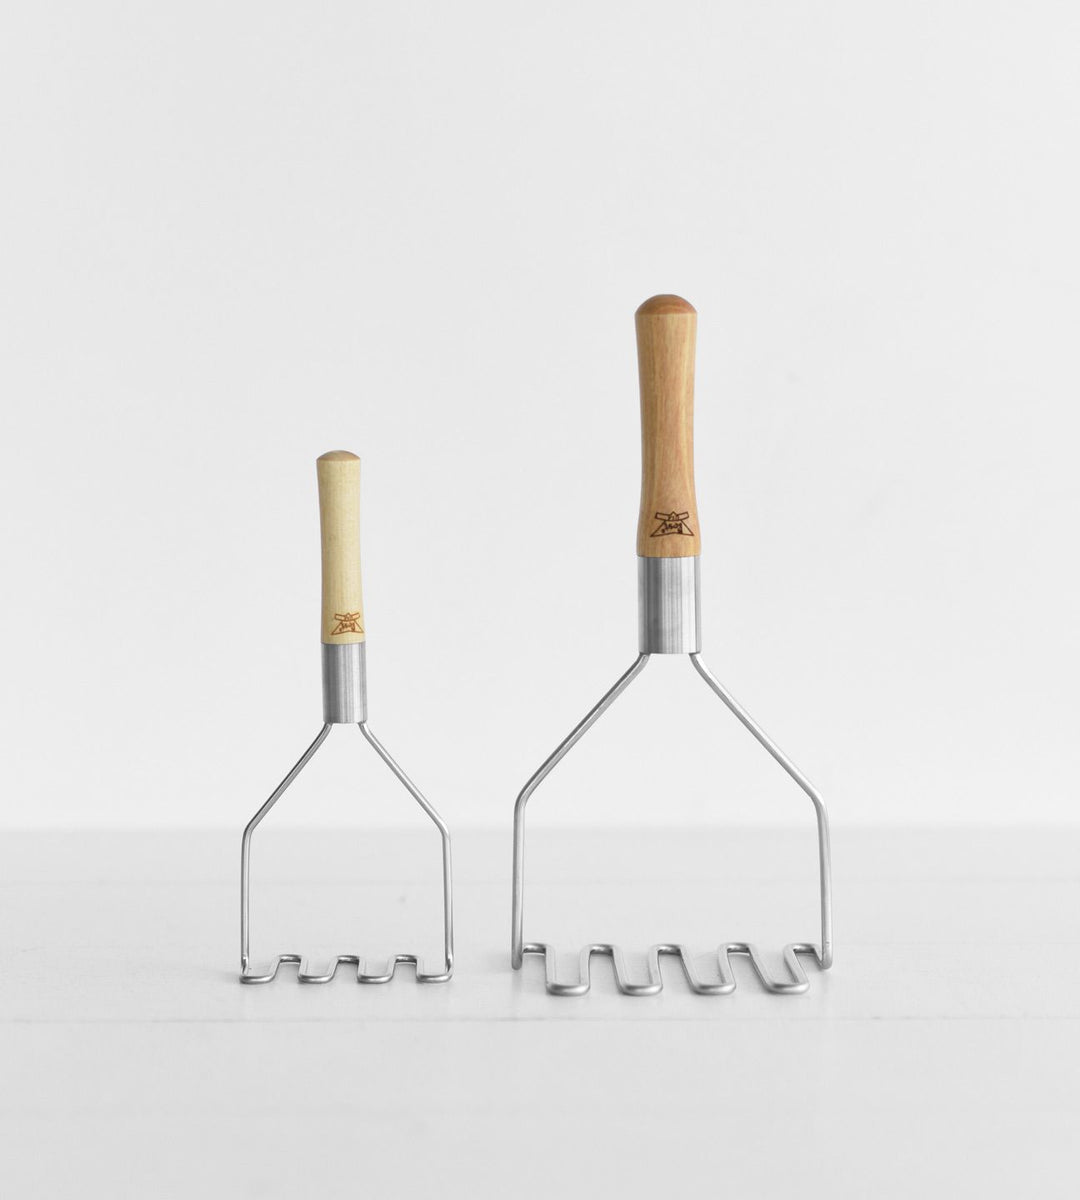 Stainless Steel Masher with Wood Handle